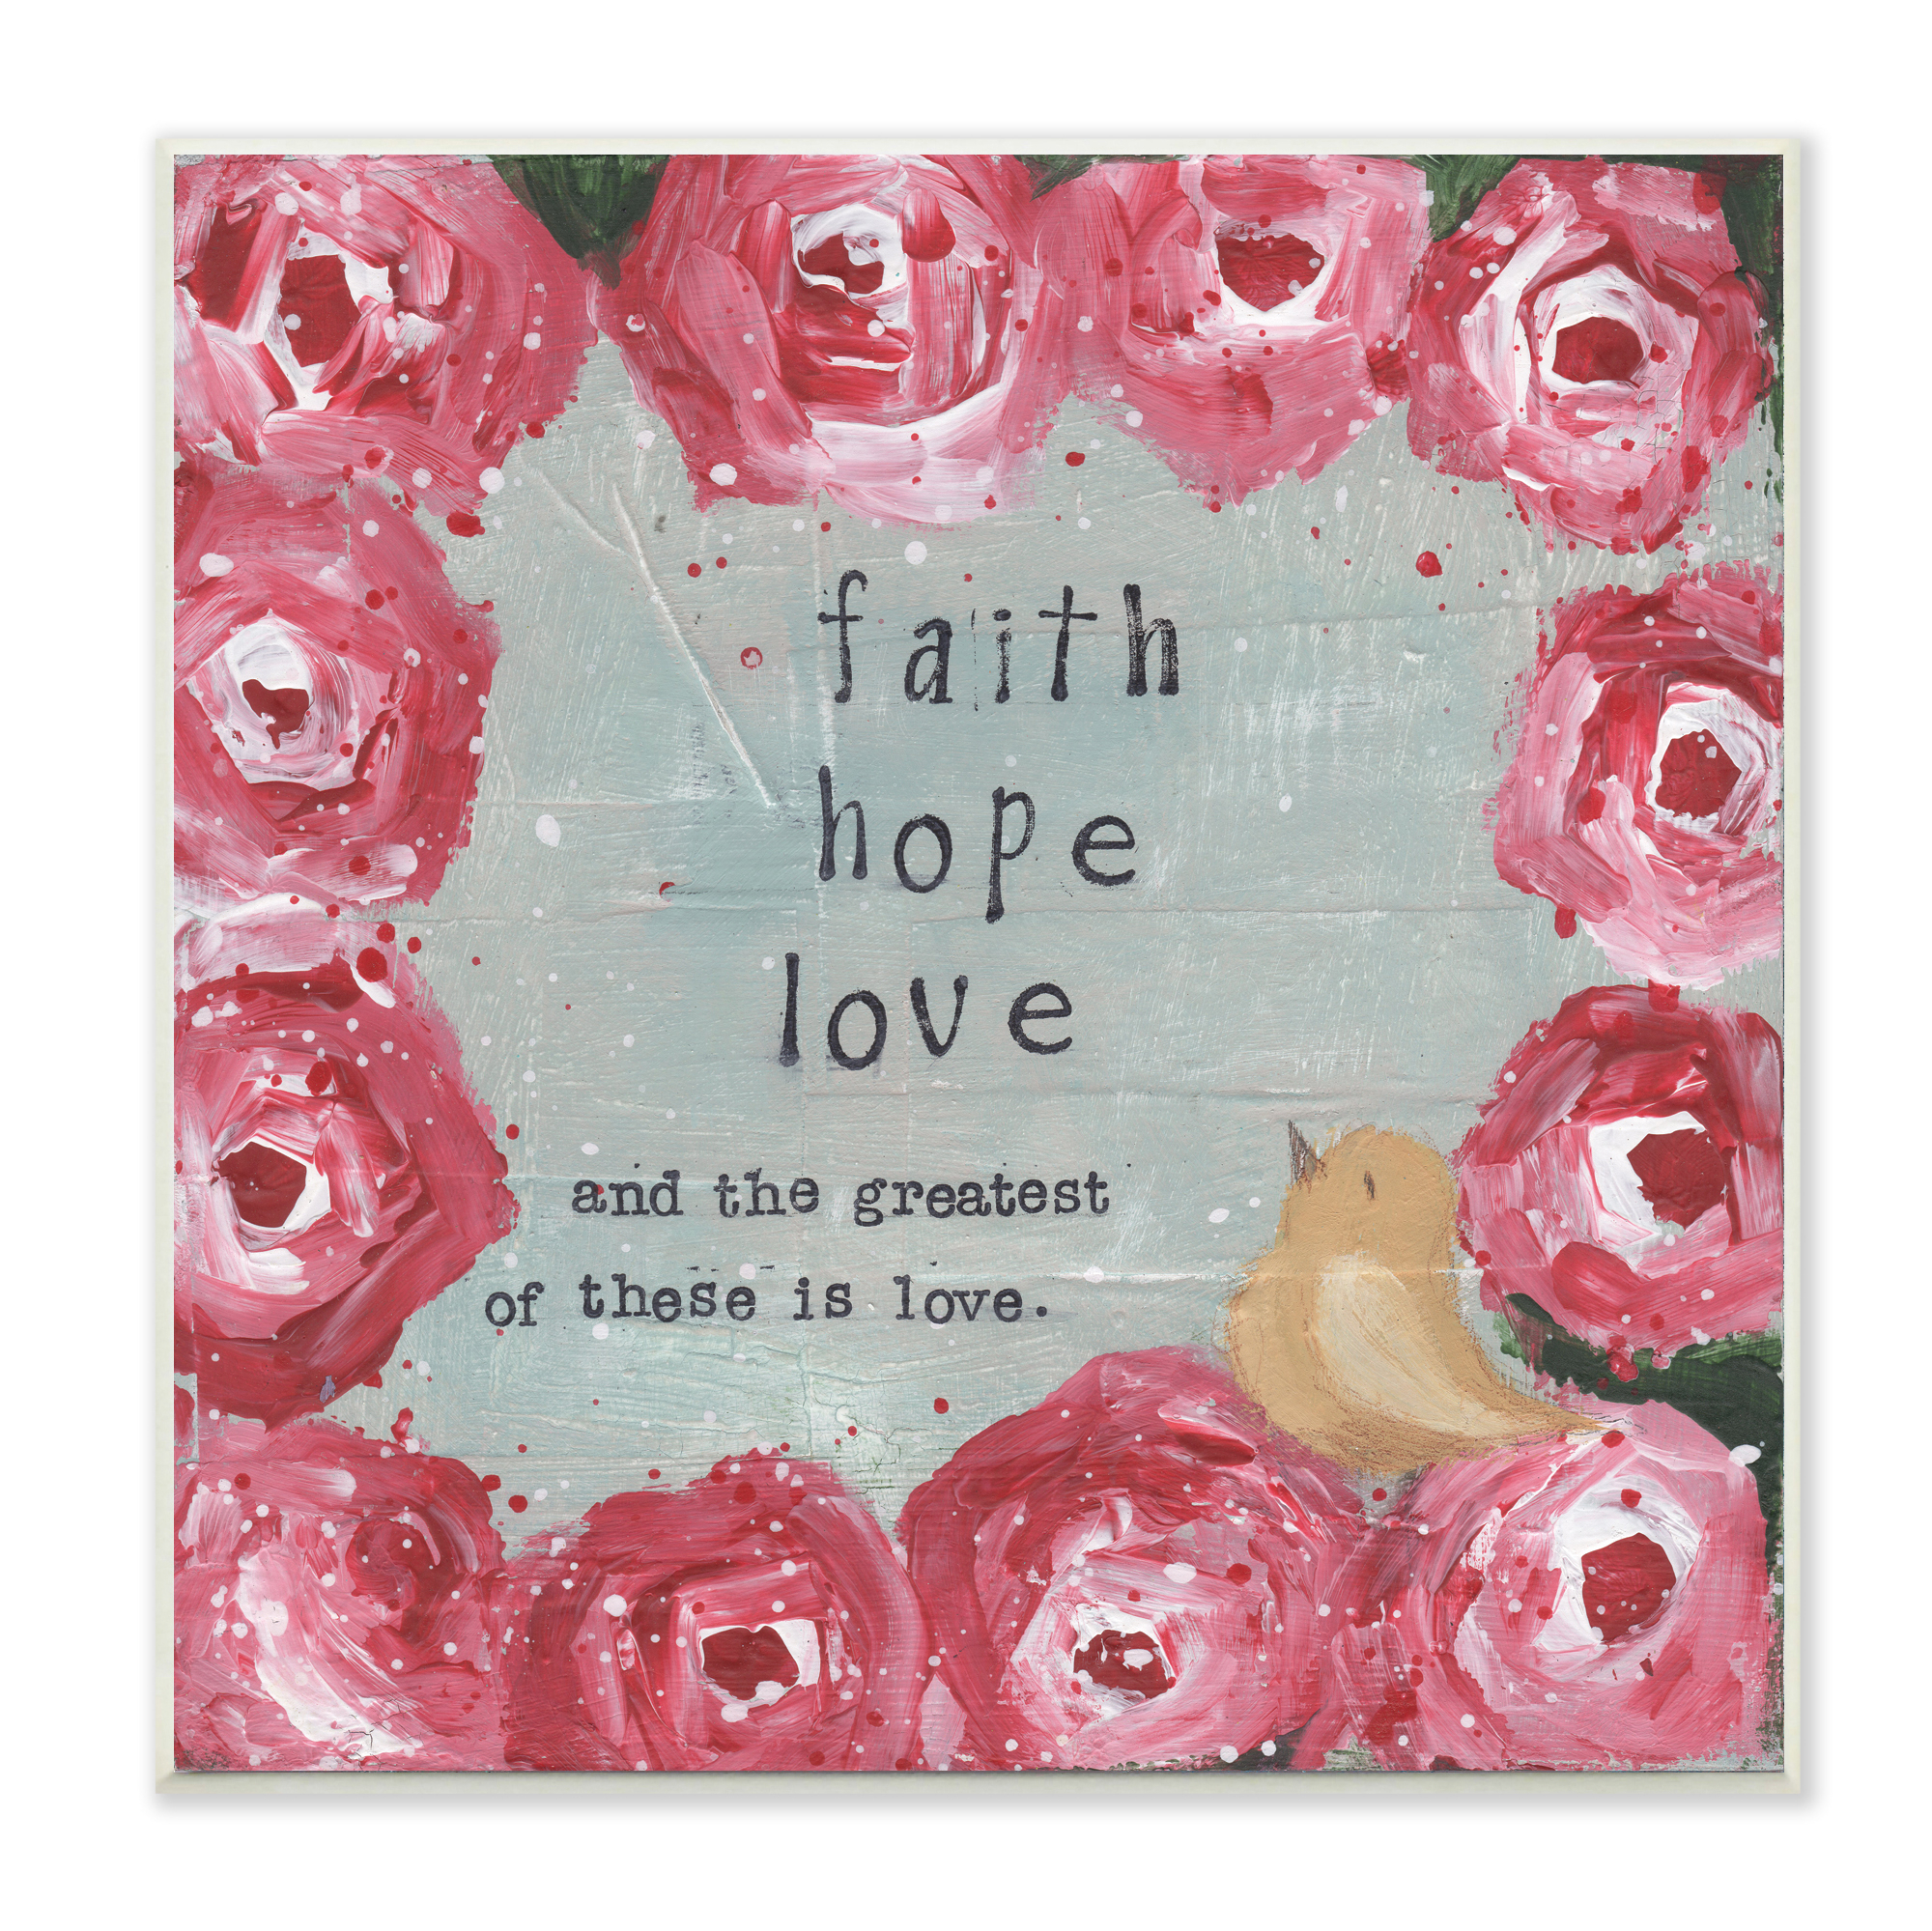 Widely Used Faith, Hope, Love Raised Sign Wall Decor Pertaining To Stupell Home Decor Collection (View 20 of 20)